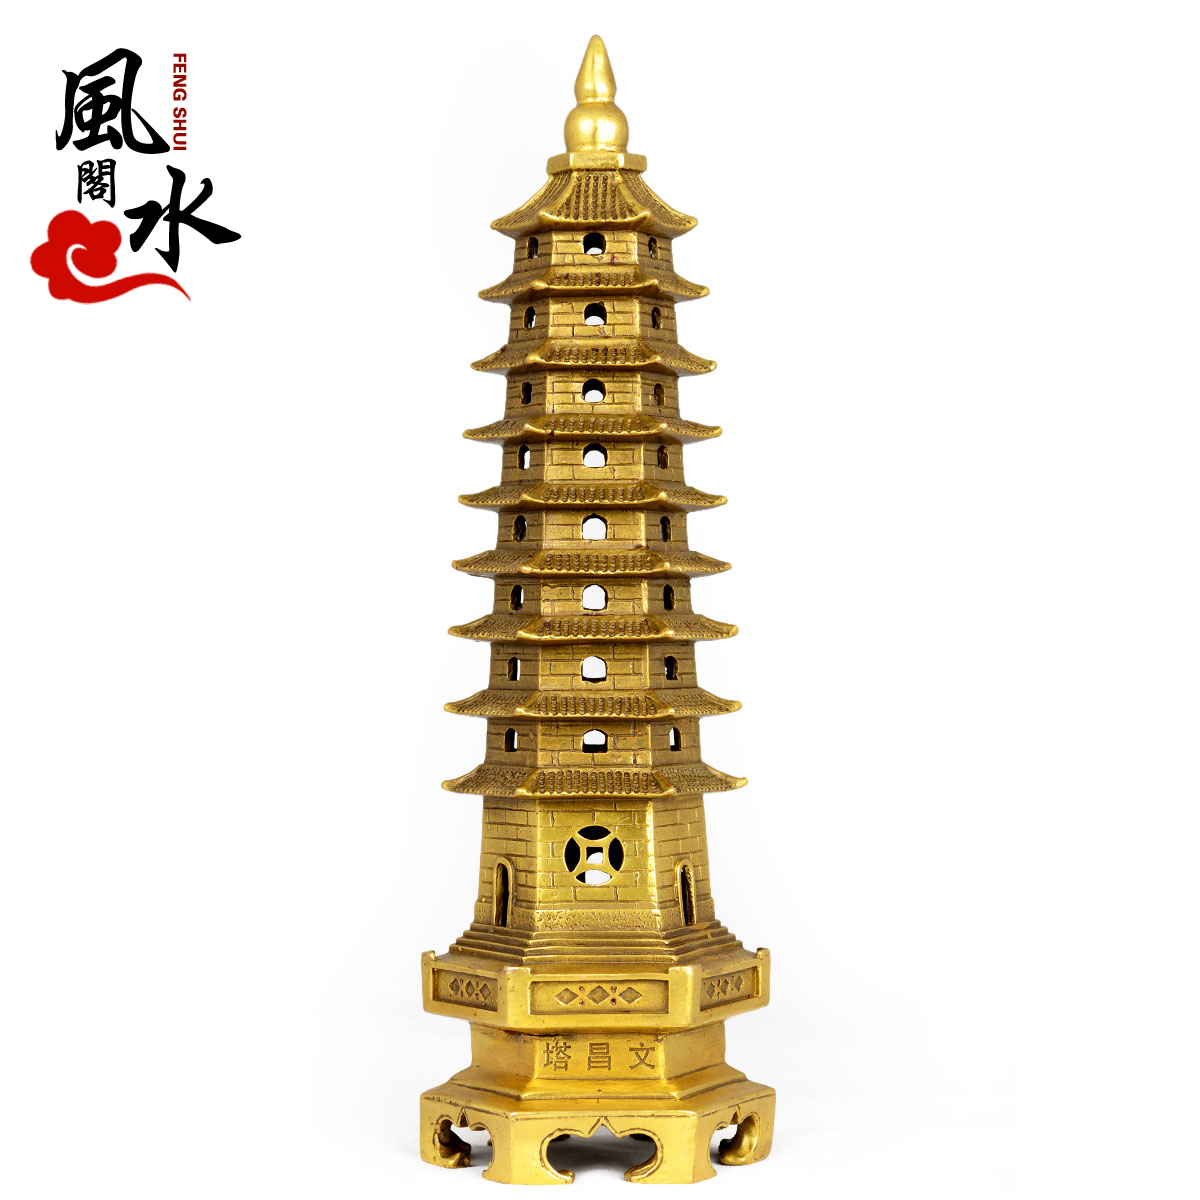 Feng shui house opening nine copper ornaments wenchang tower 9 layers home desk ornaments ornaments decorate the office